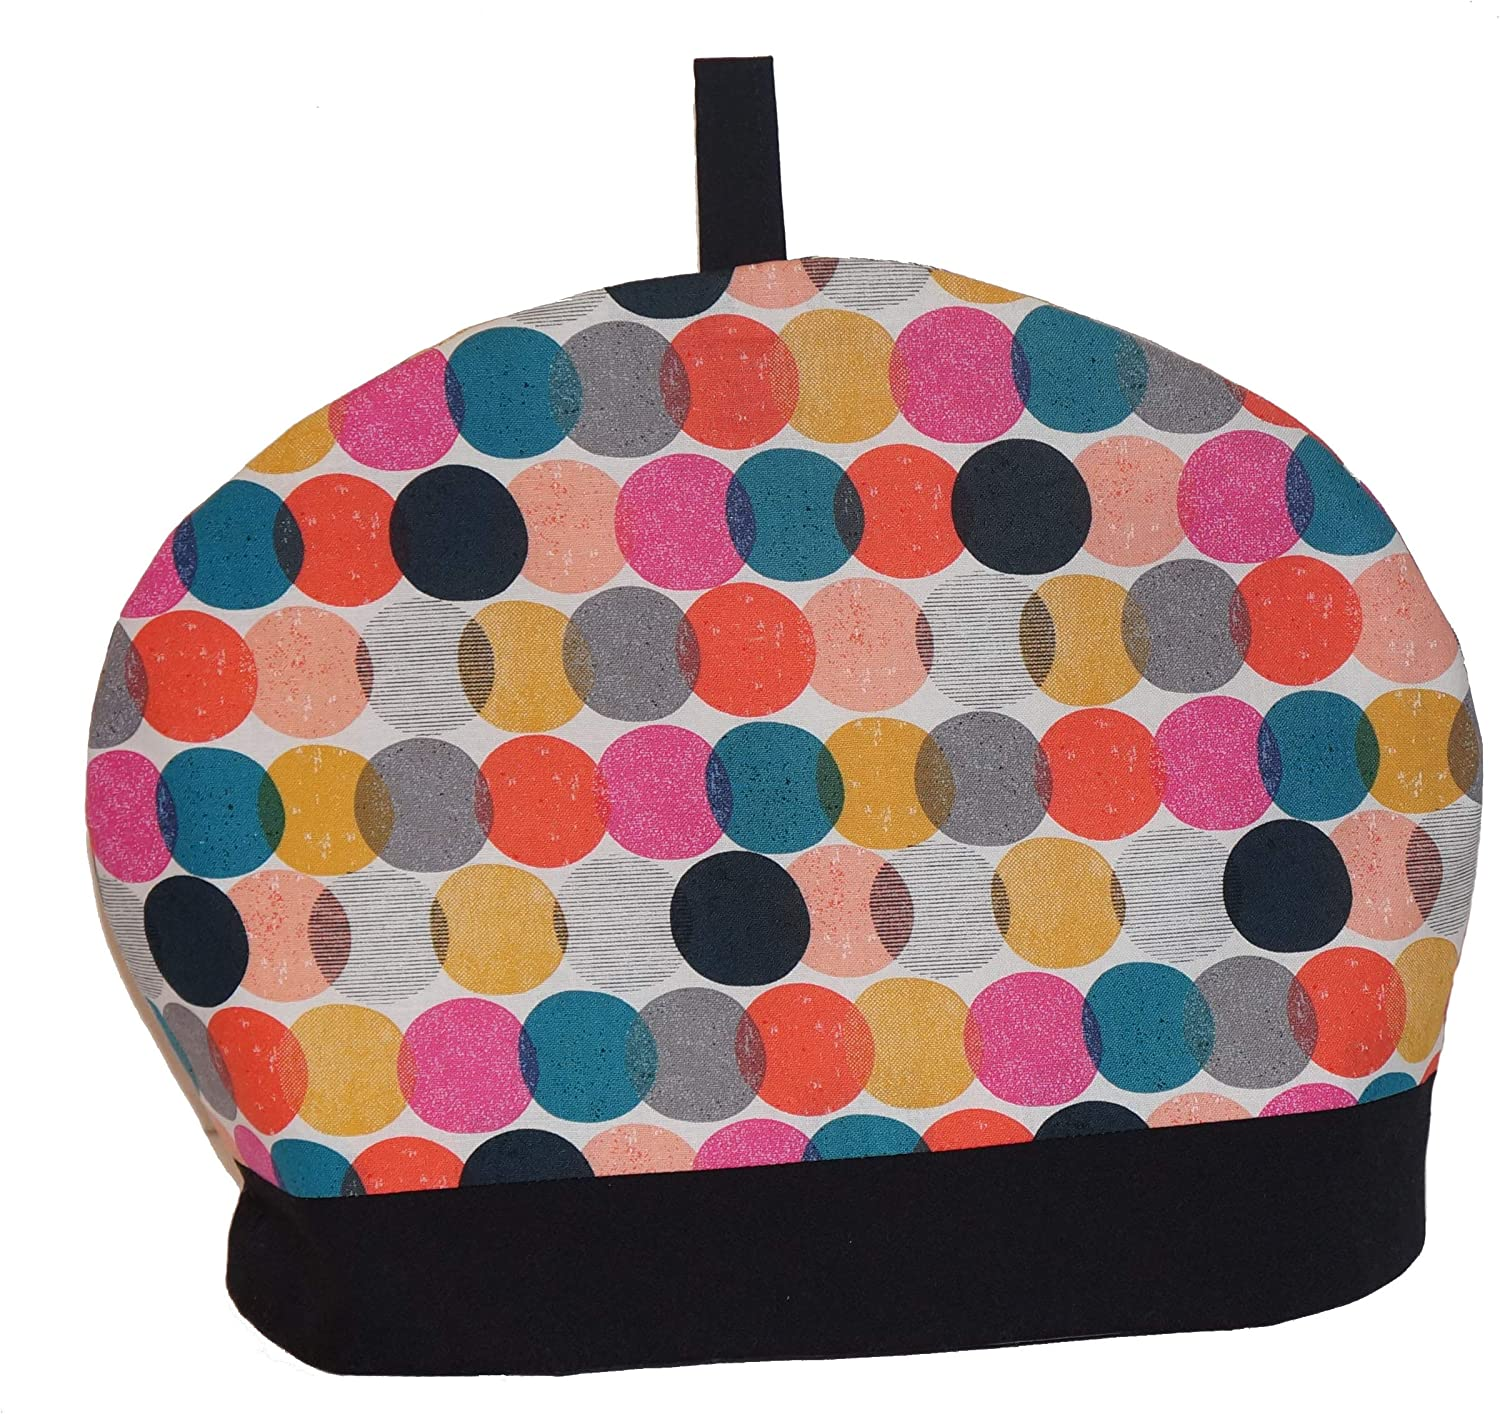 Whimsly Tea Cozy half 6-8 Cup Discs Size OFFicial Multi-Colored Insulated